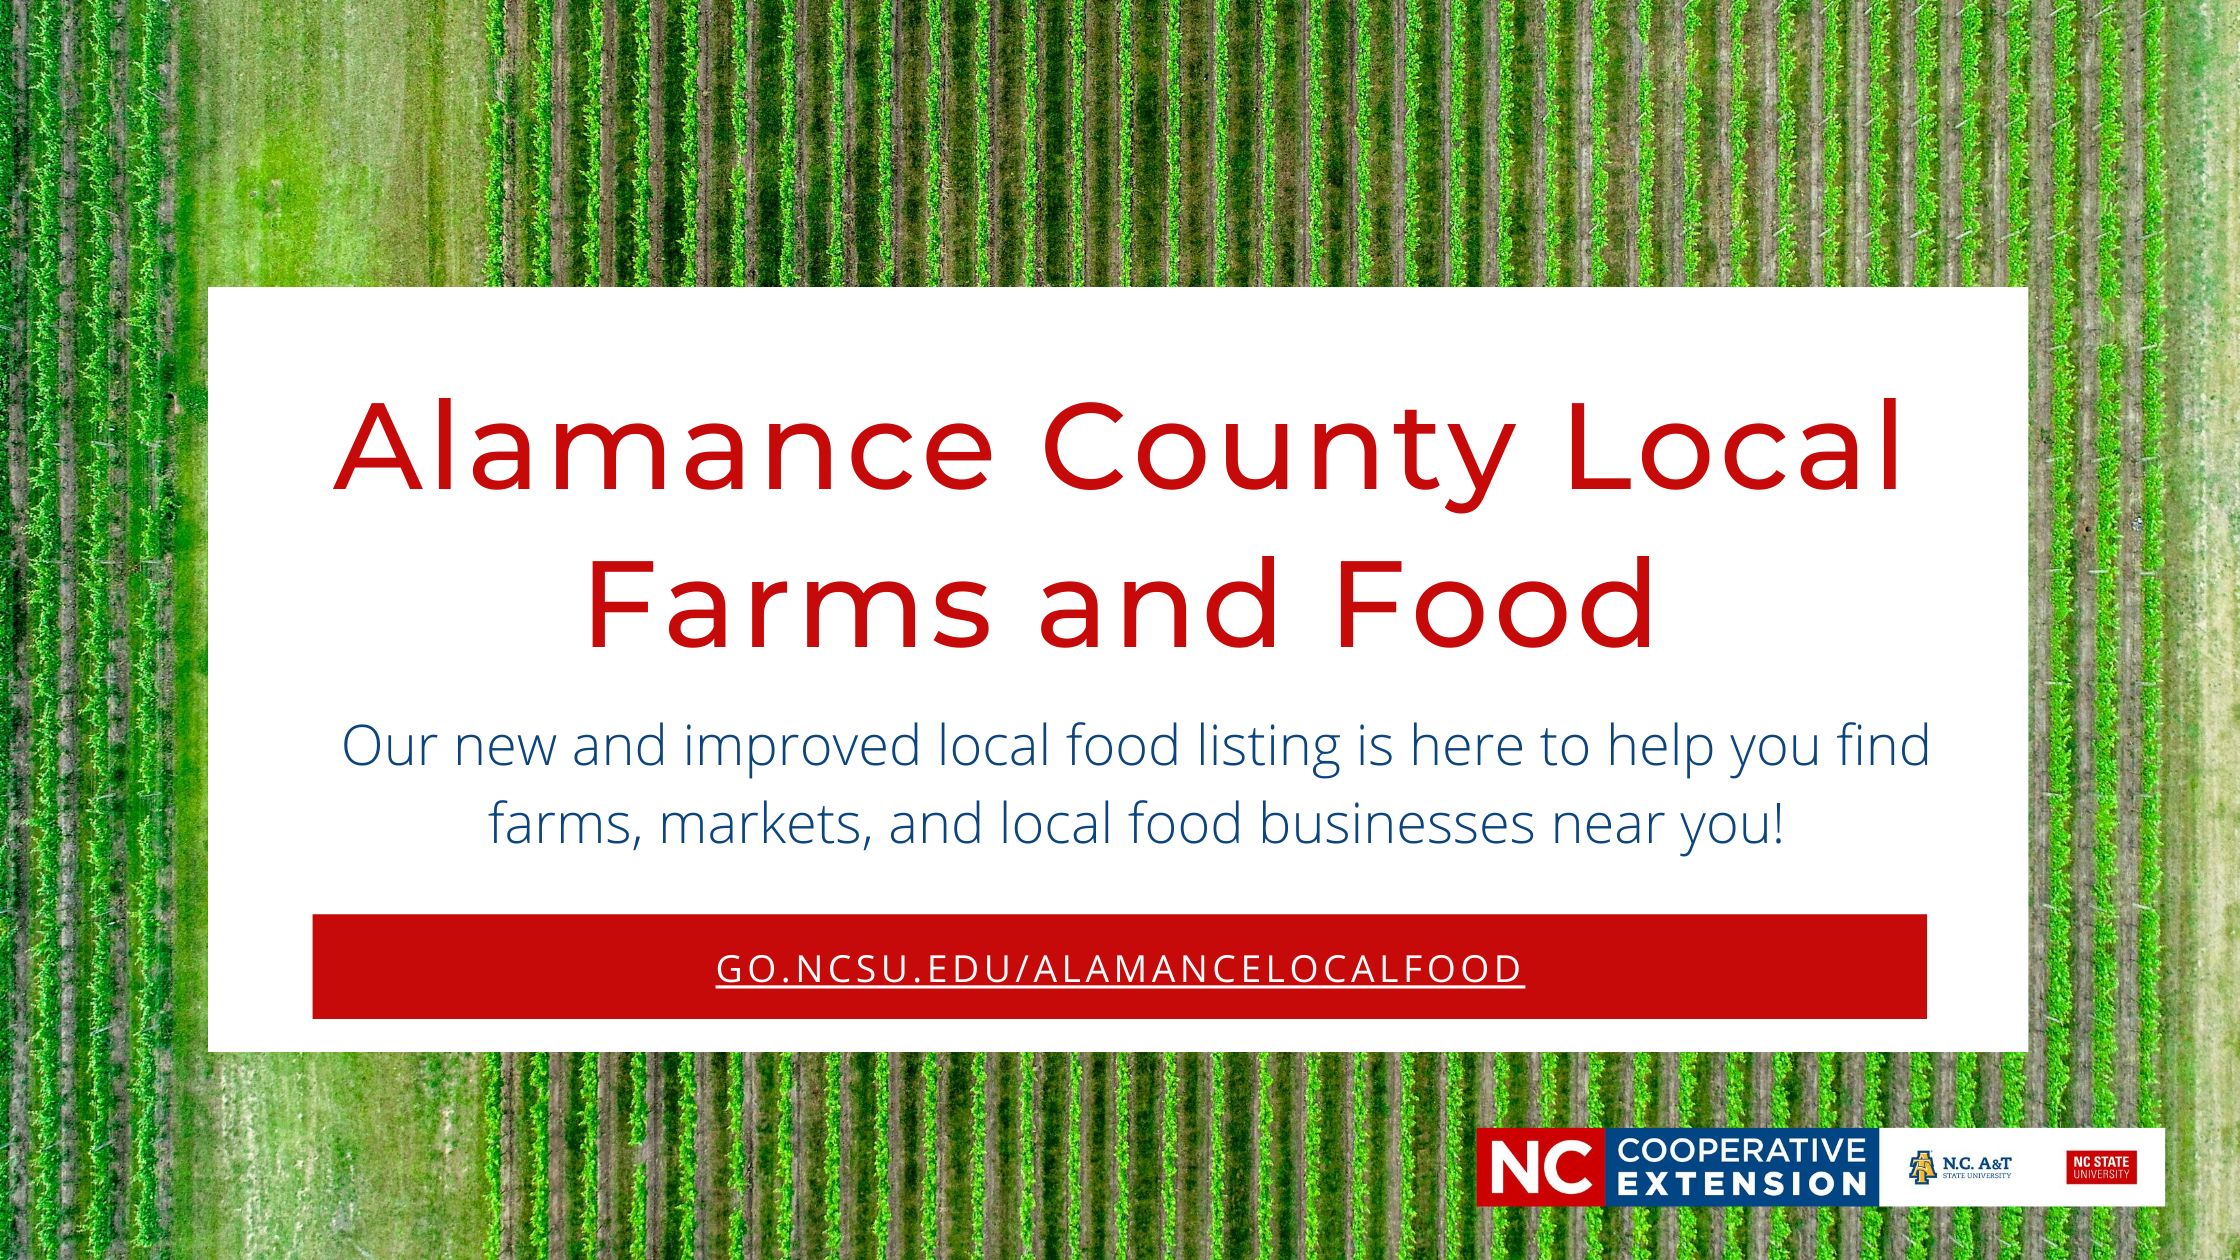 Red text on white background saying Alamance County Local Farms and Food with link to local food listing